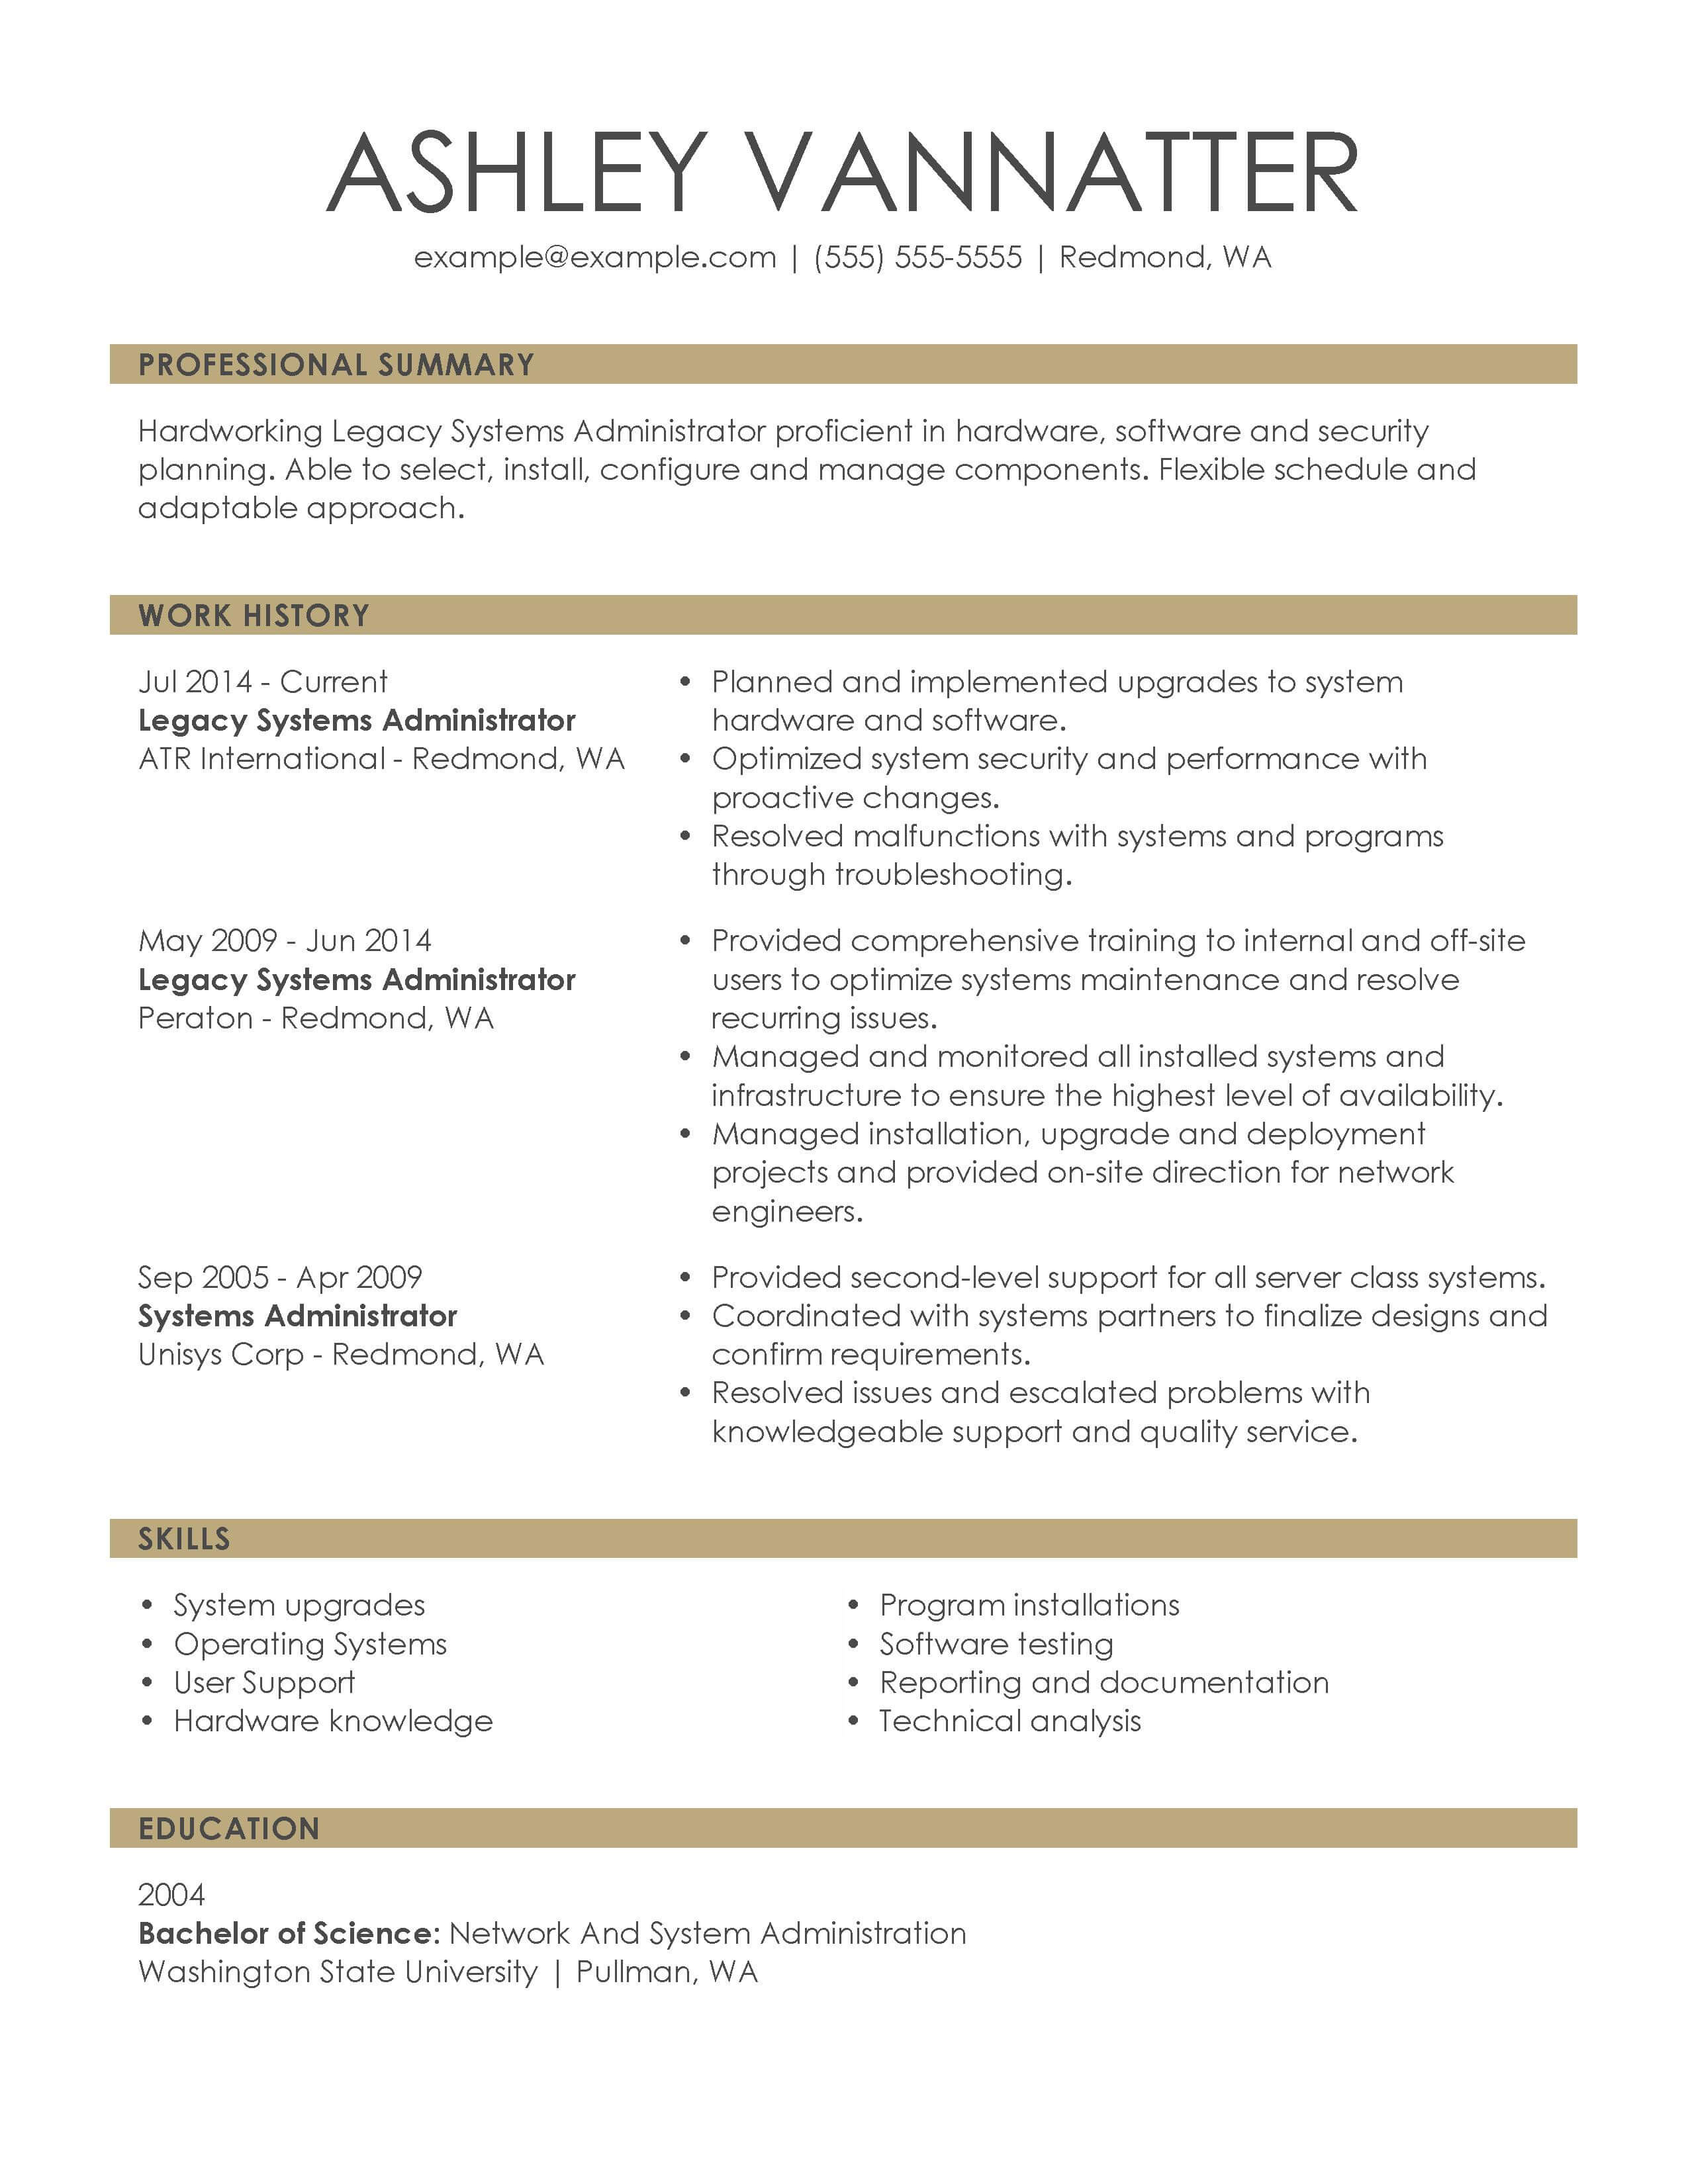 Example Of A Resume Chronological Executive Legacy Systems Administrator example of a resume wikiresume.com